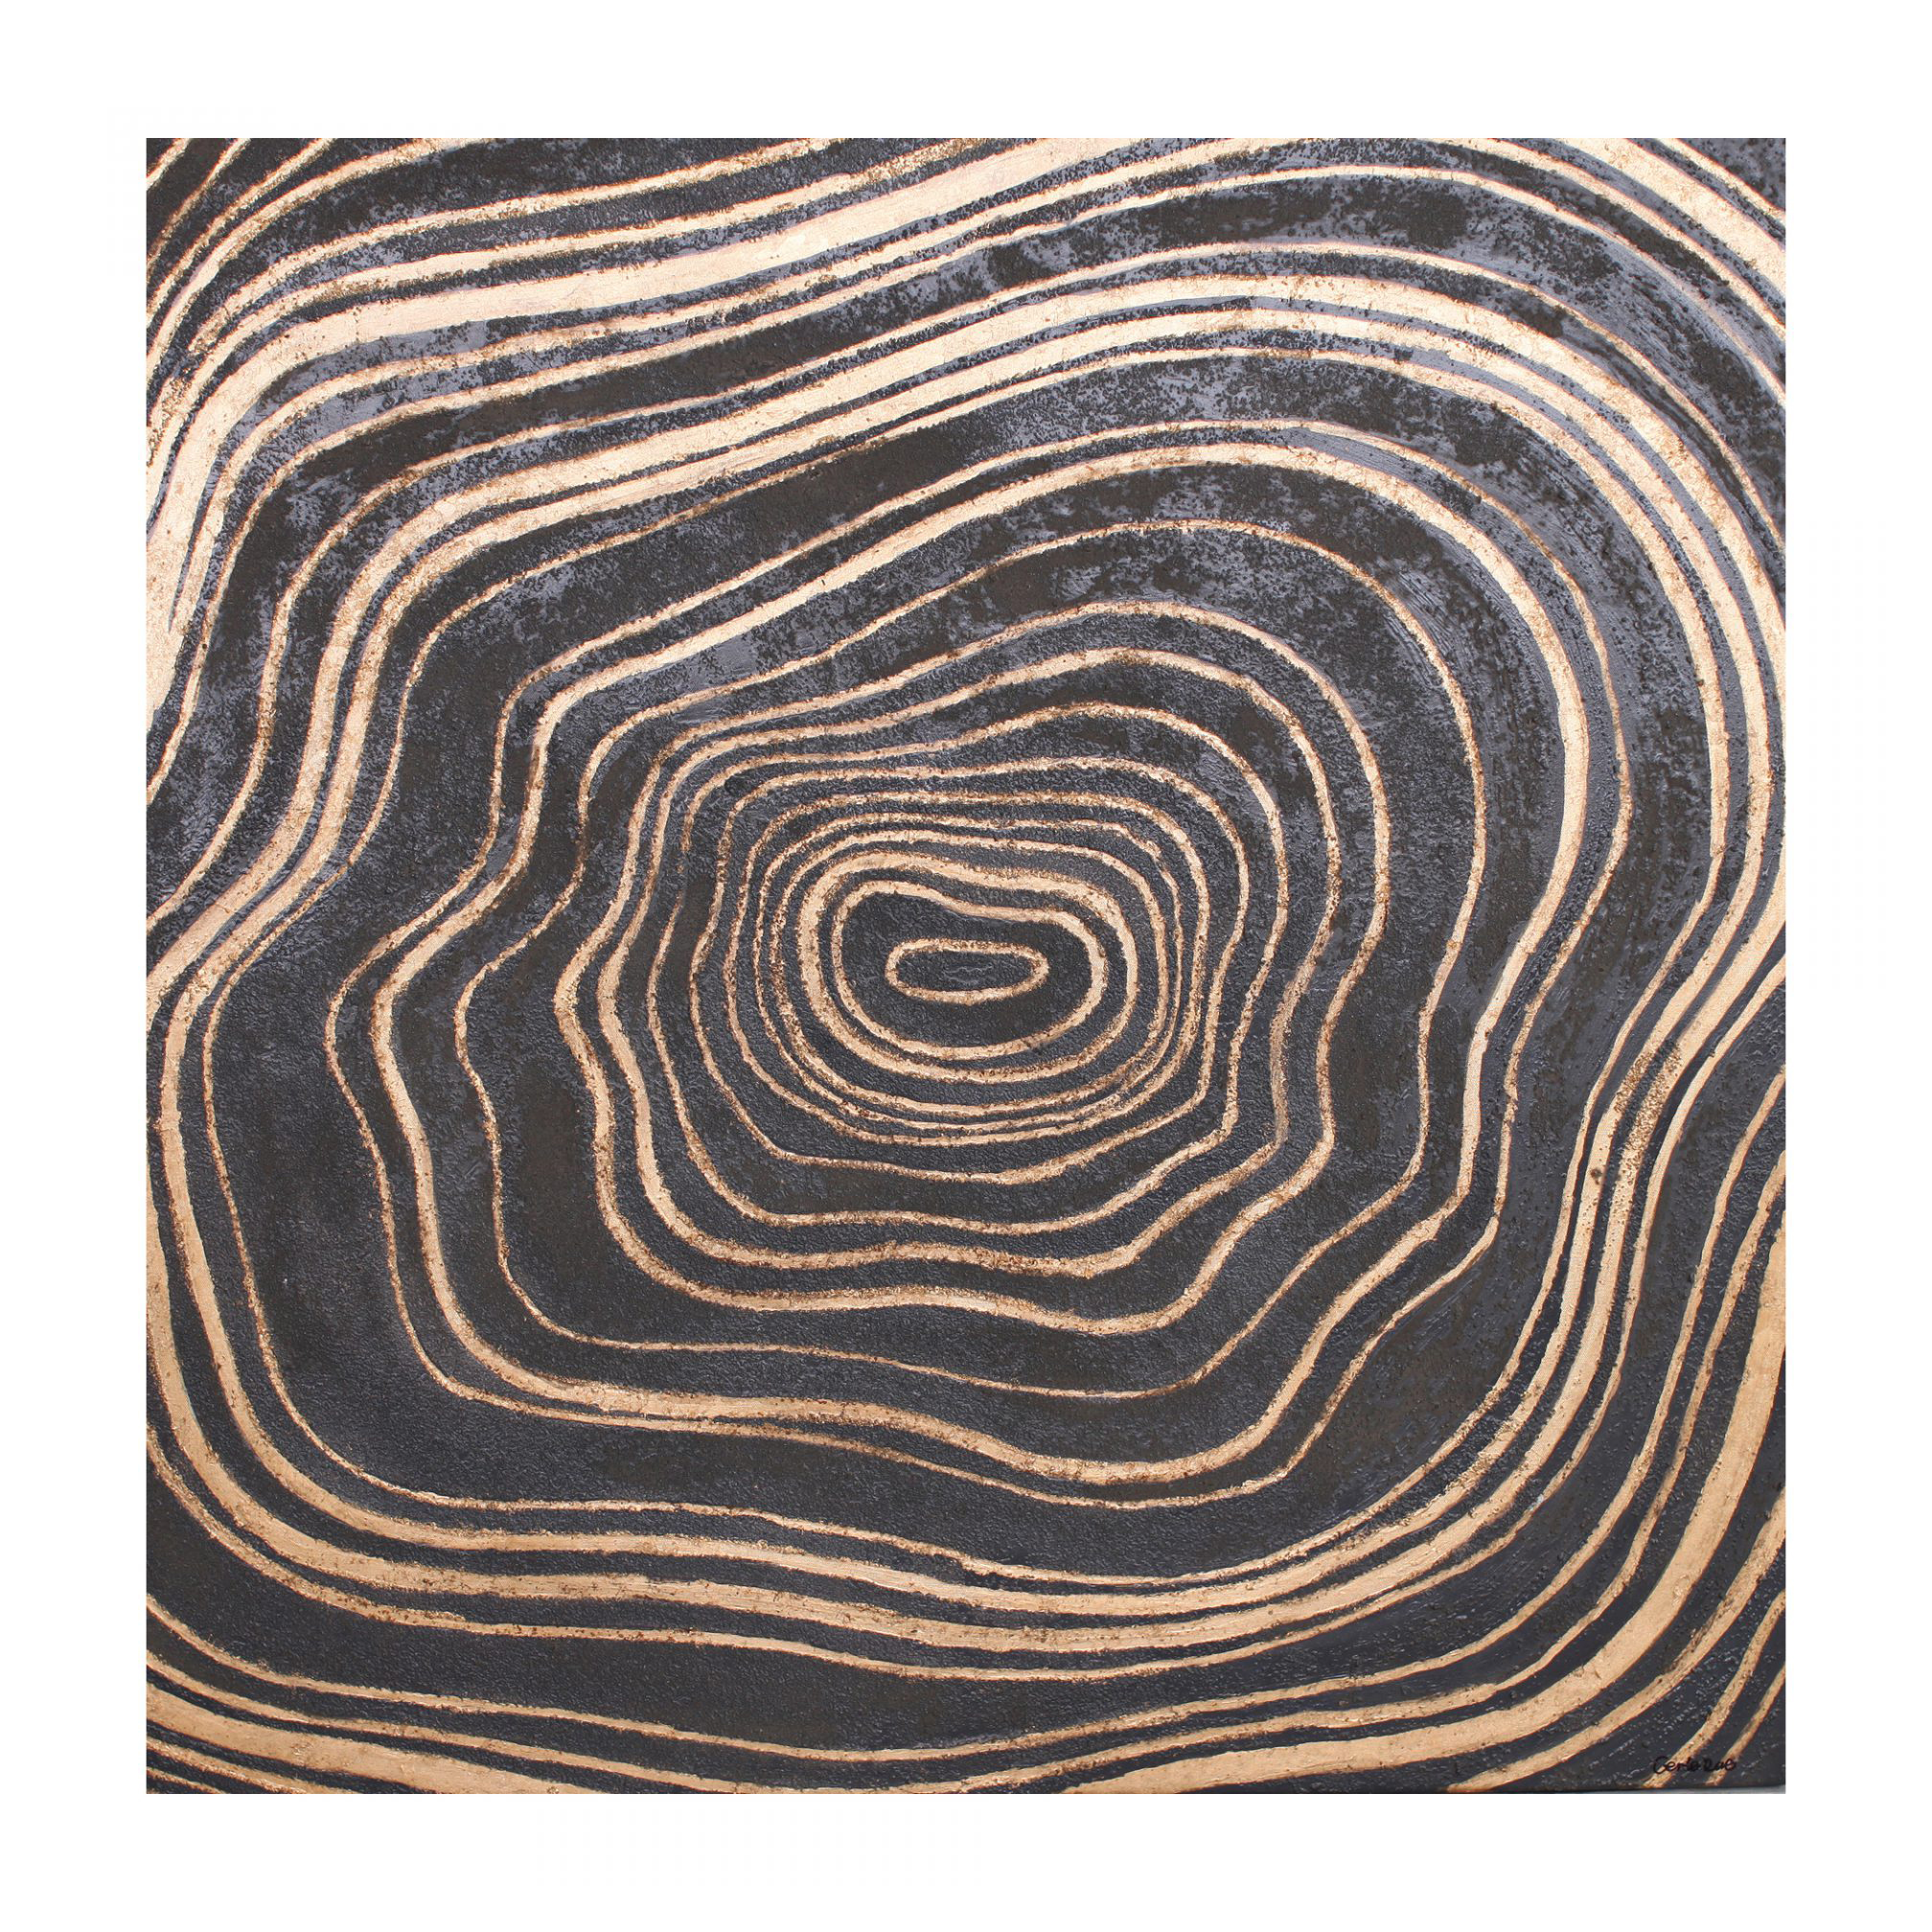 Tree Rings Wall Decor Peter Corvallis Productions Party